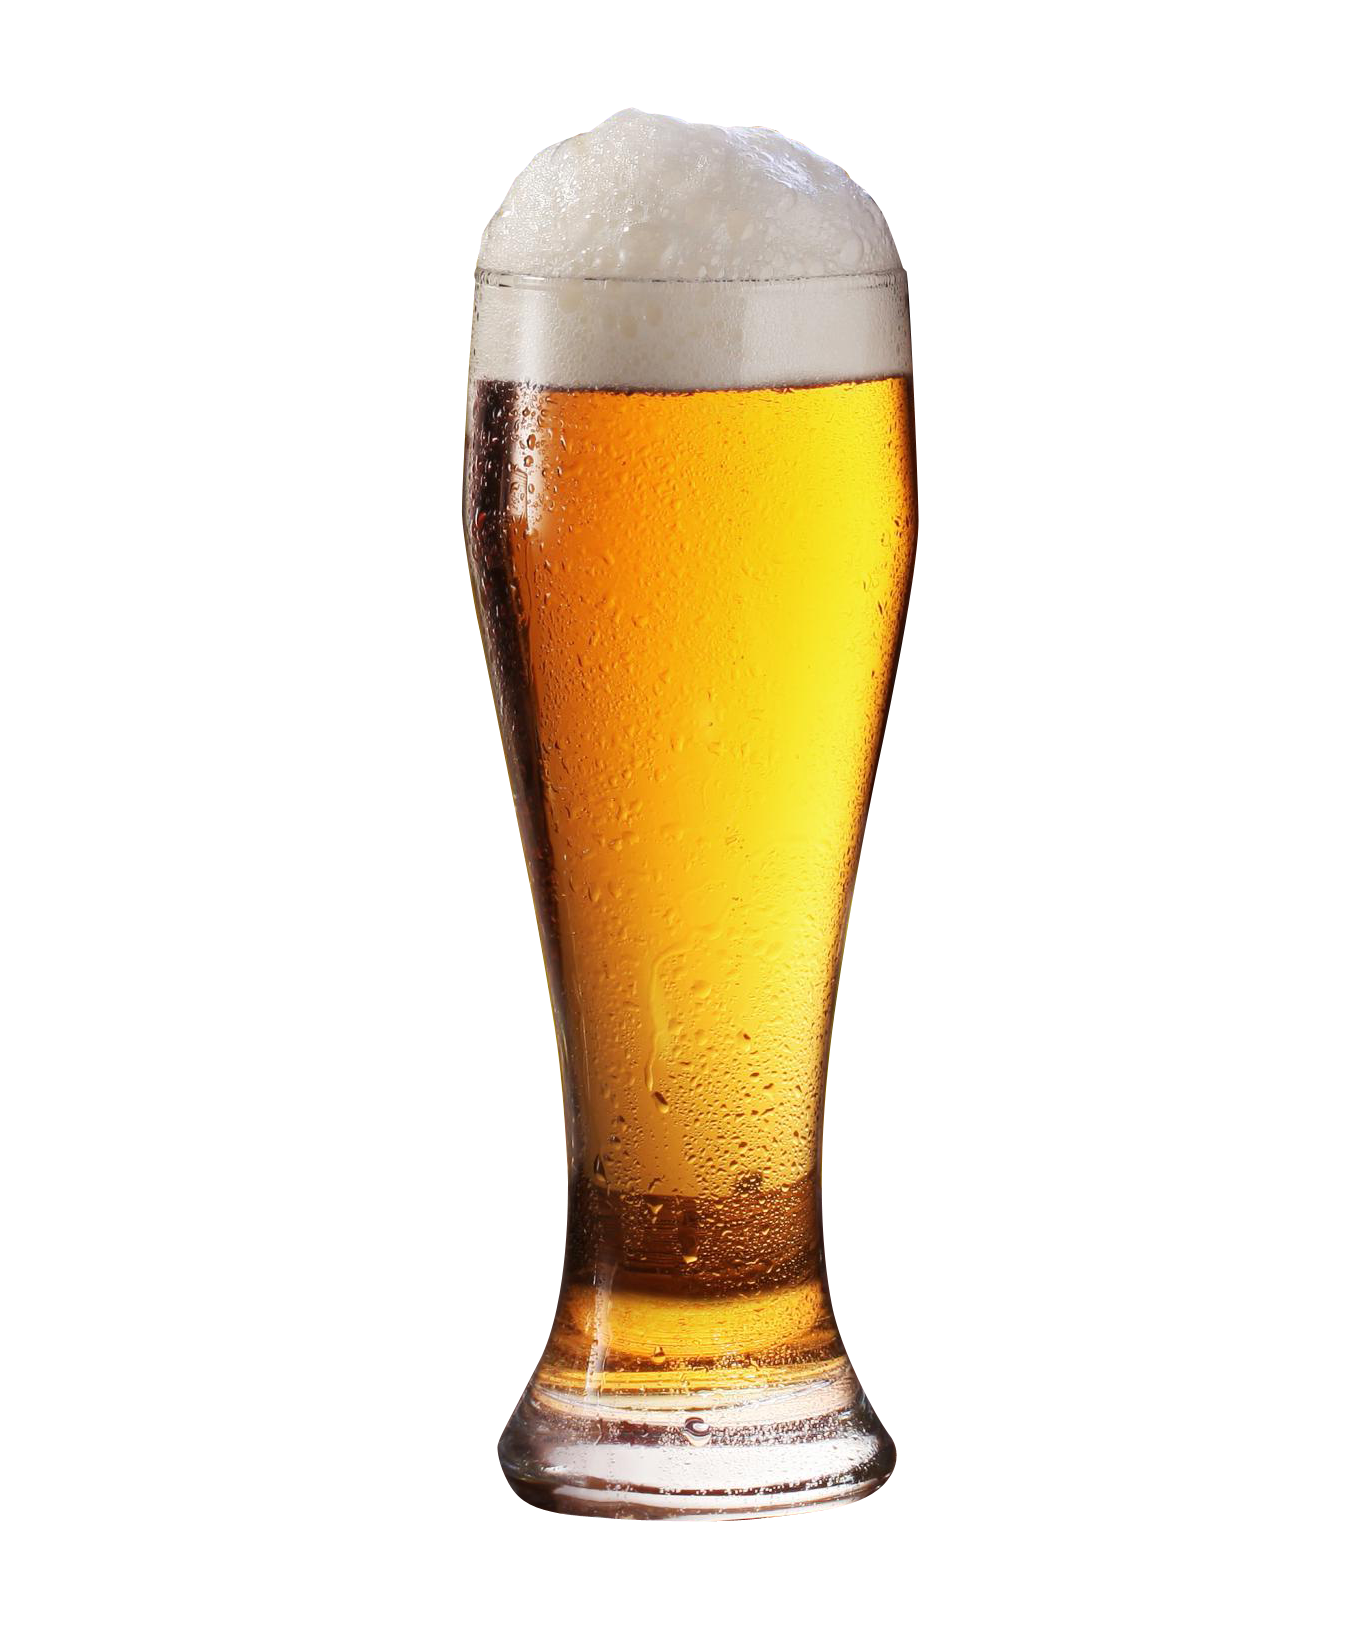 Beer cup png. Images pngpix glass transparent